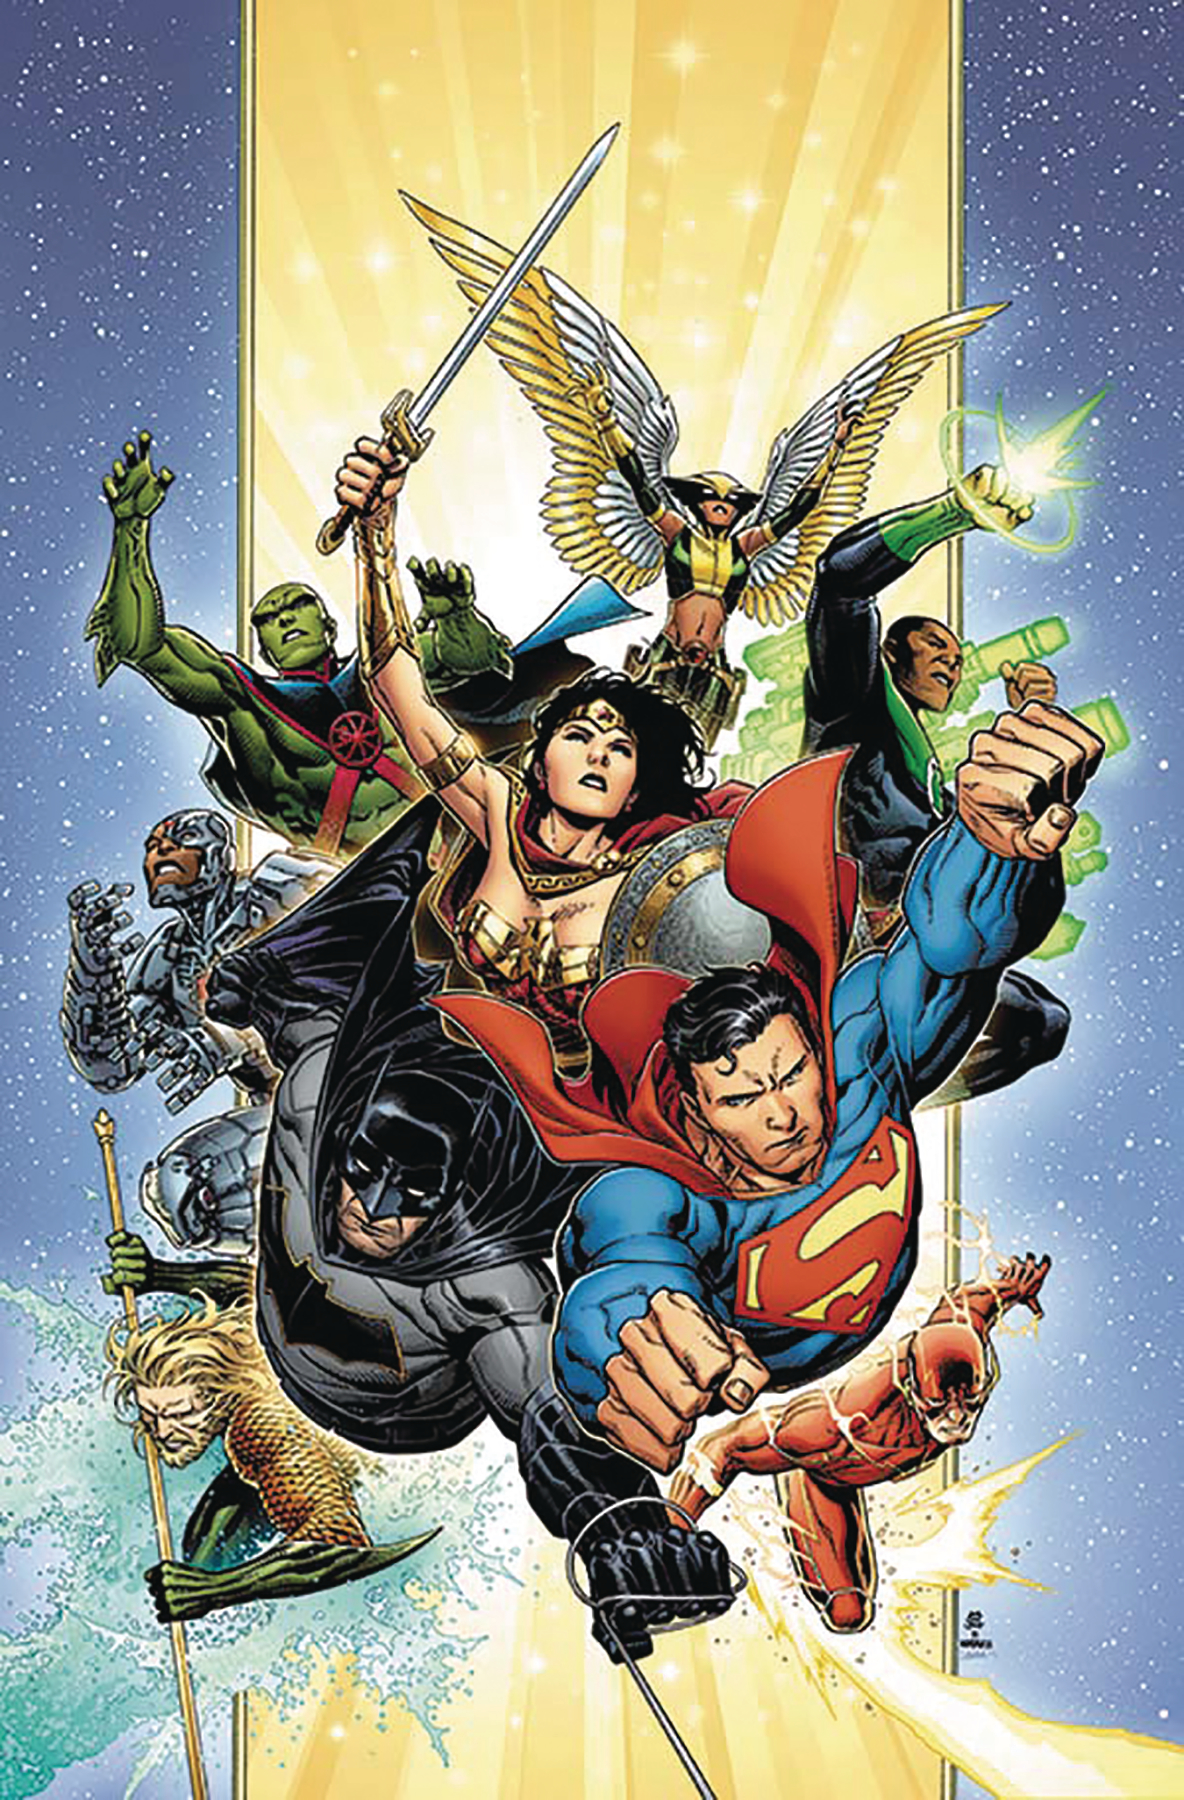 DF JUSTICE LEAGUE #1 SGN SNYDER